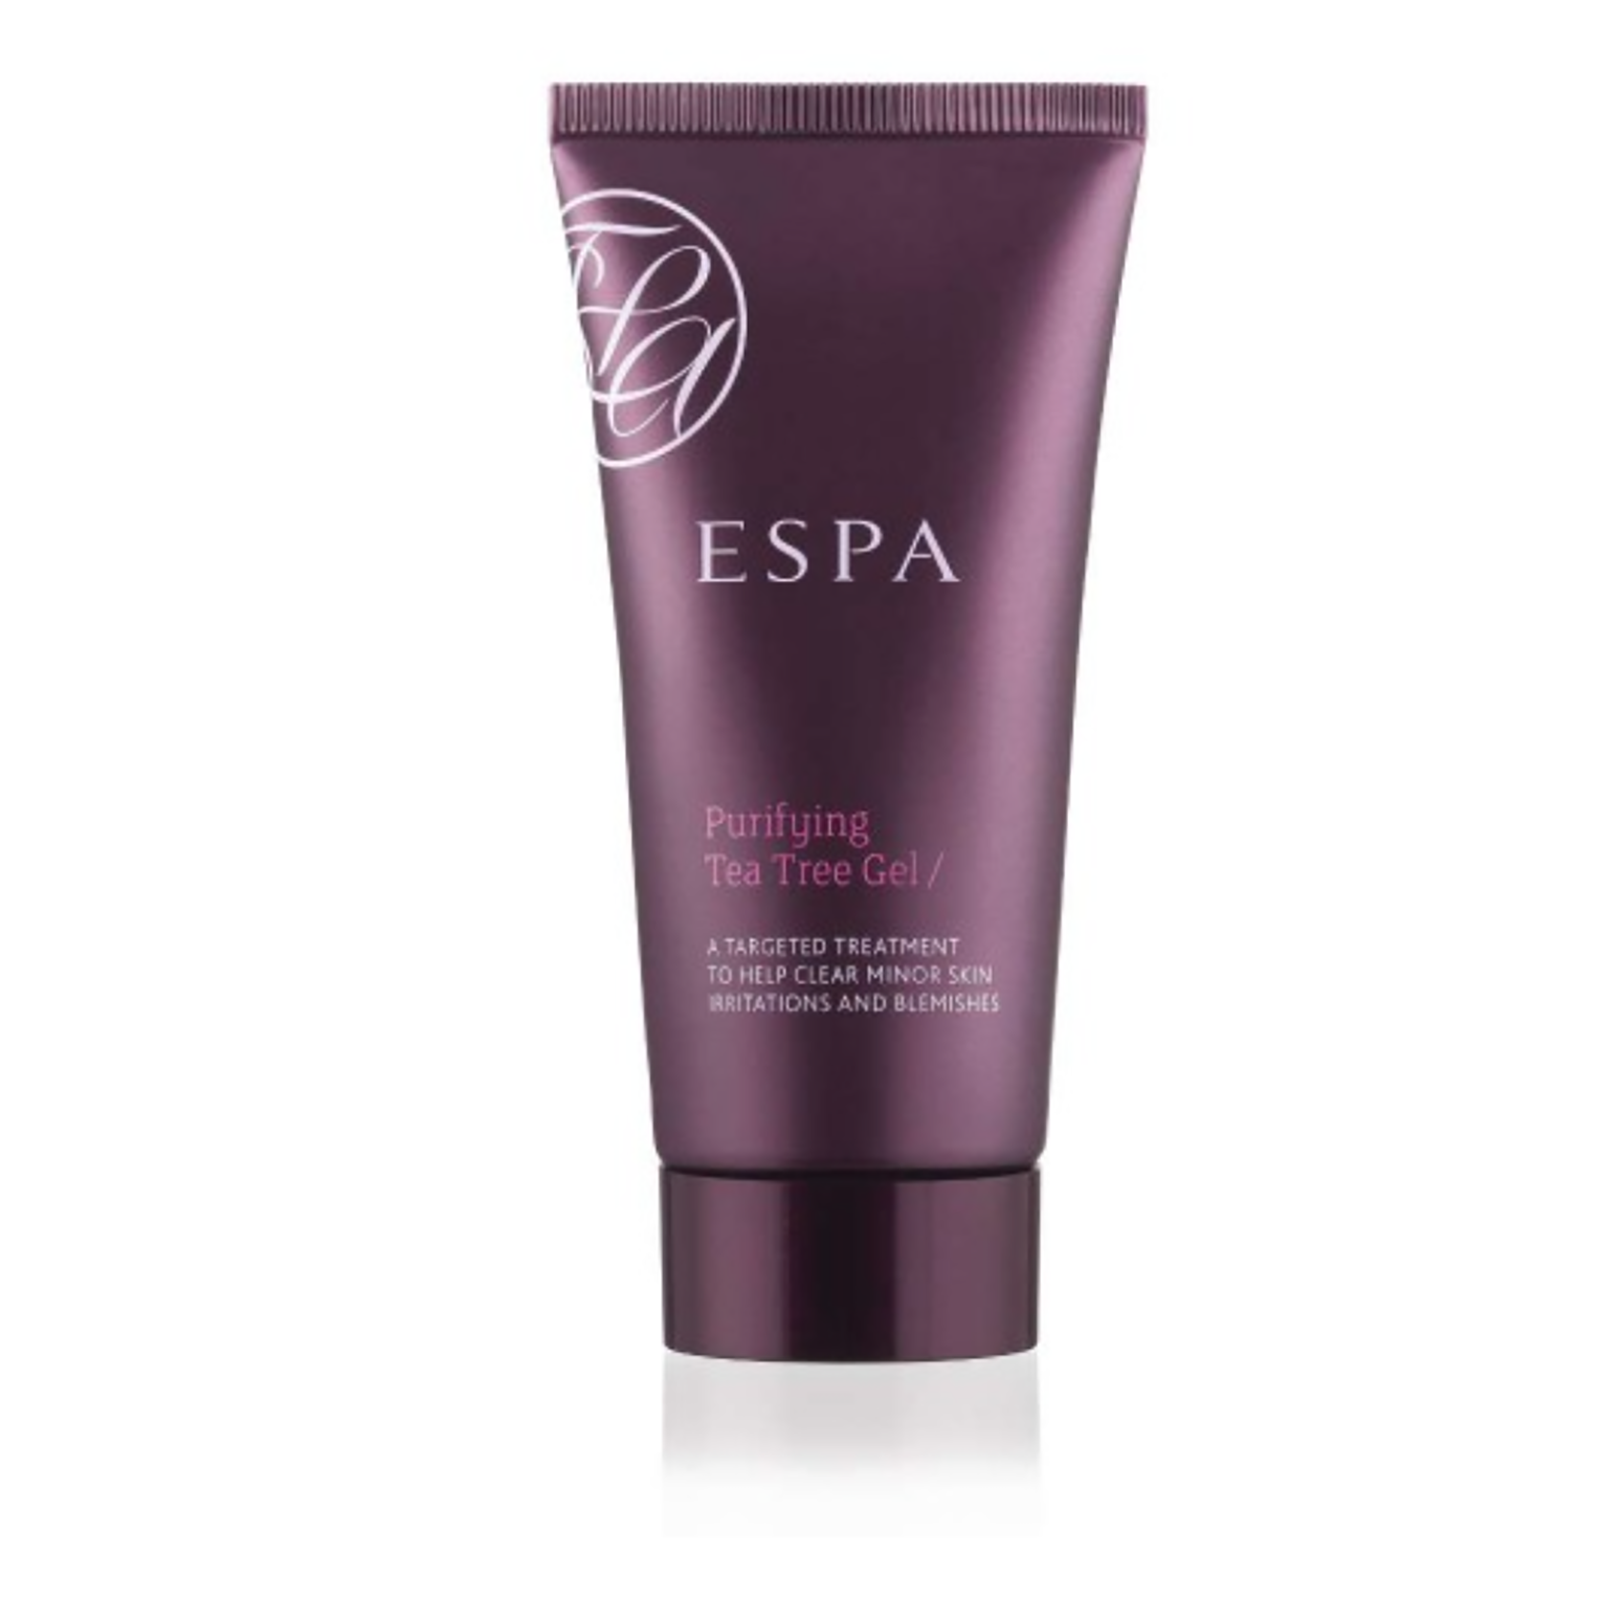 ESPA Purifying Tea Tree Gel (50ml)